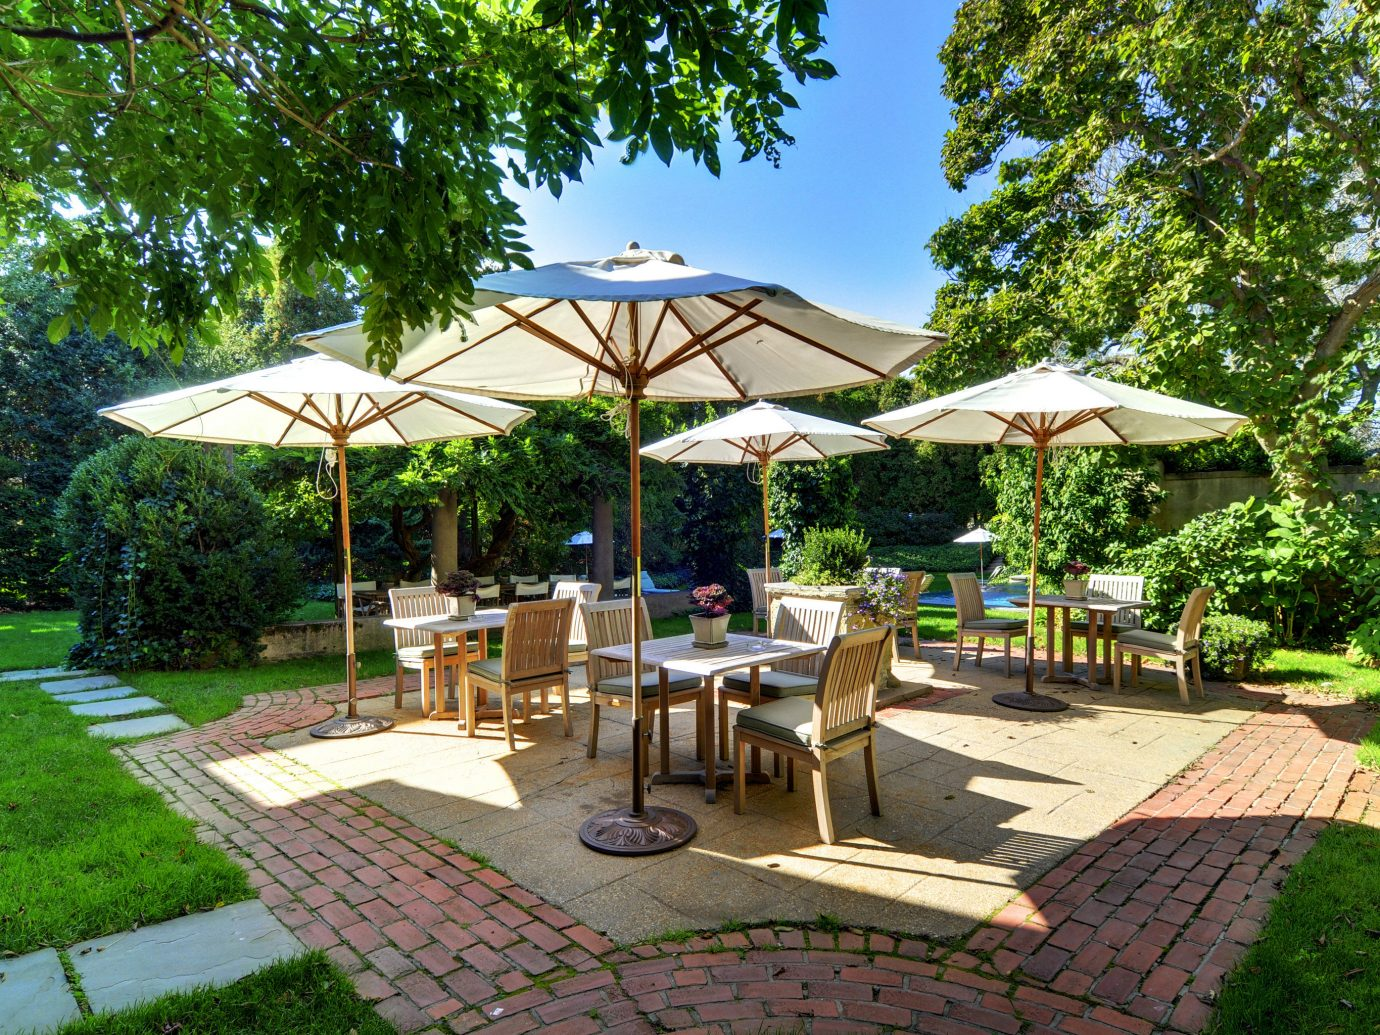 B&B Dining Elegant Historic Inn Patio Romantic Wellness tree outdoor grass ground leisure property Resort lawn estate backyard gazebo Villa outdoor structure real estate Garden eco hotel pavilion cottage yard swimming pool area shade several